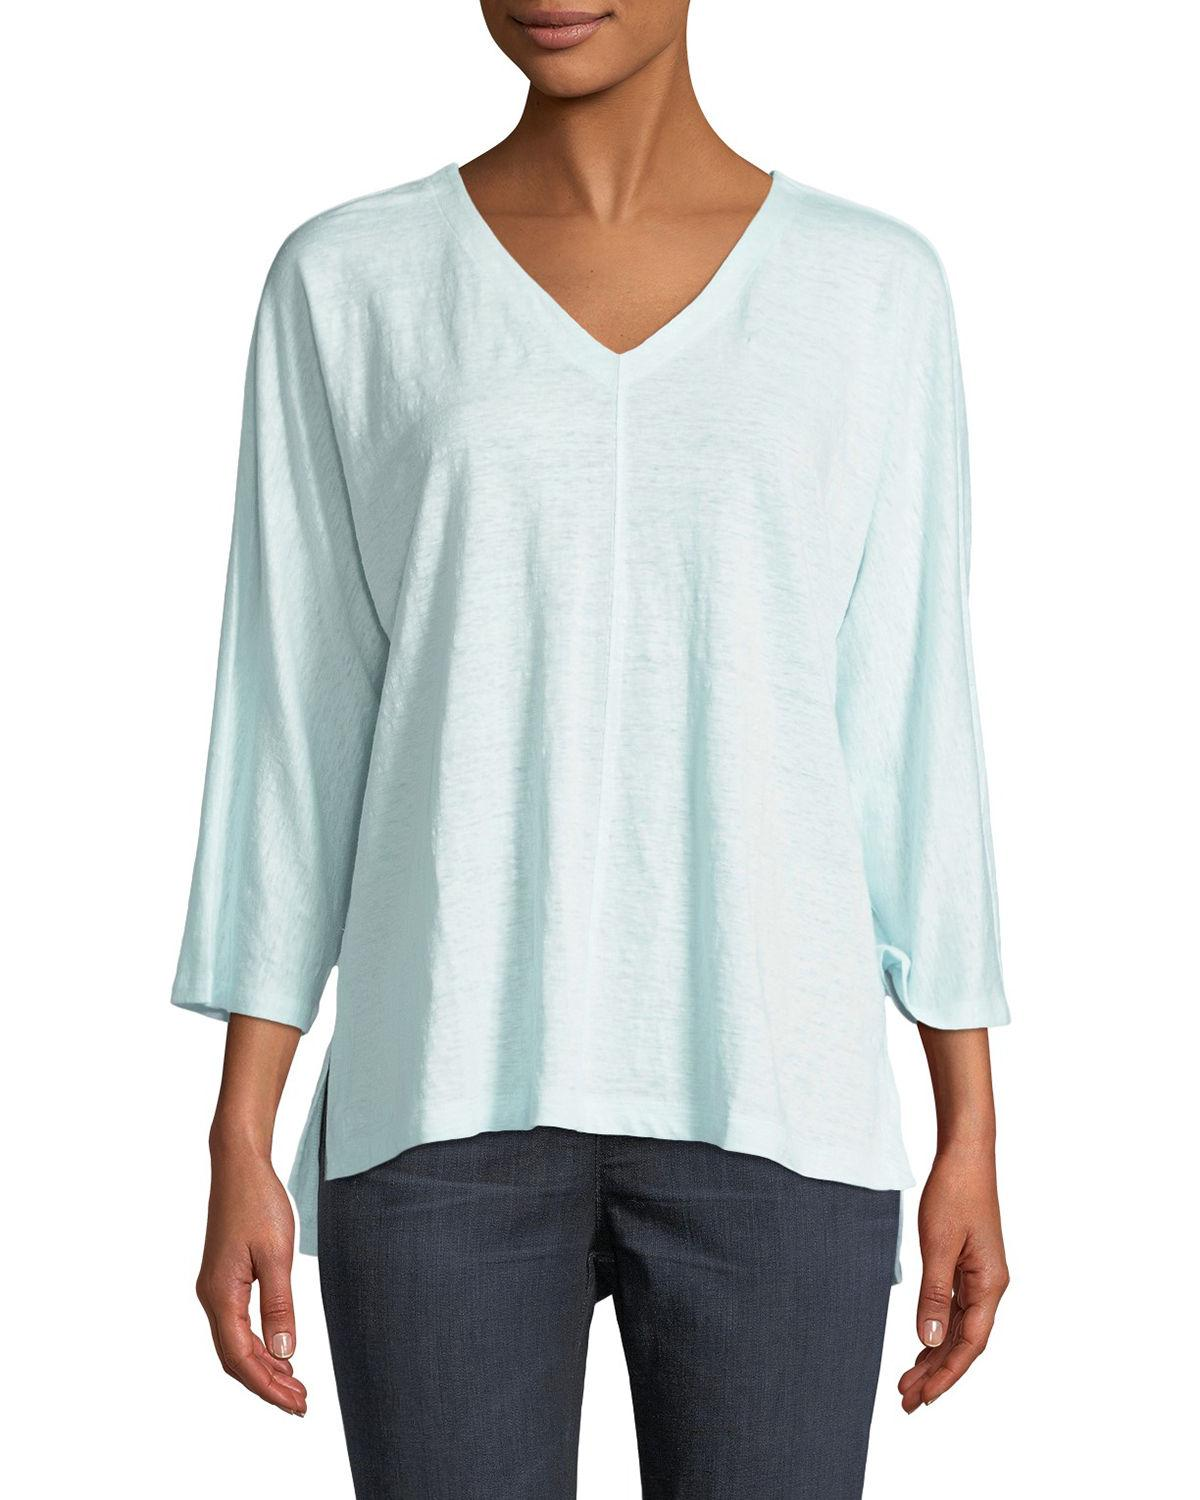 Eileen Fisher Linen Jersey V-Neck Top, Plus Size In Pool